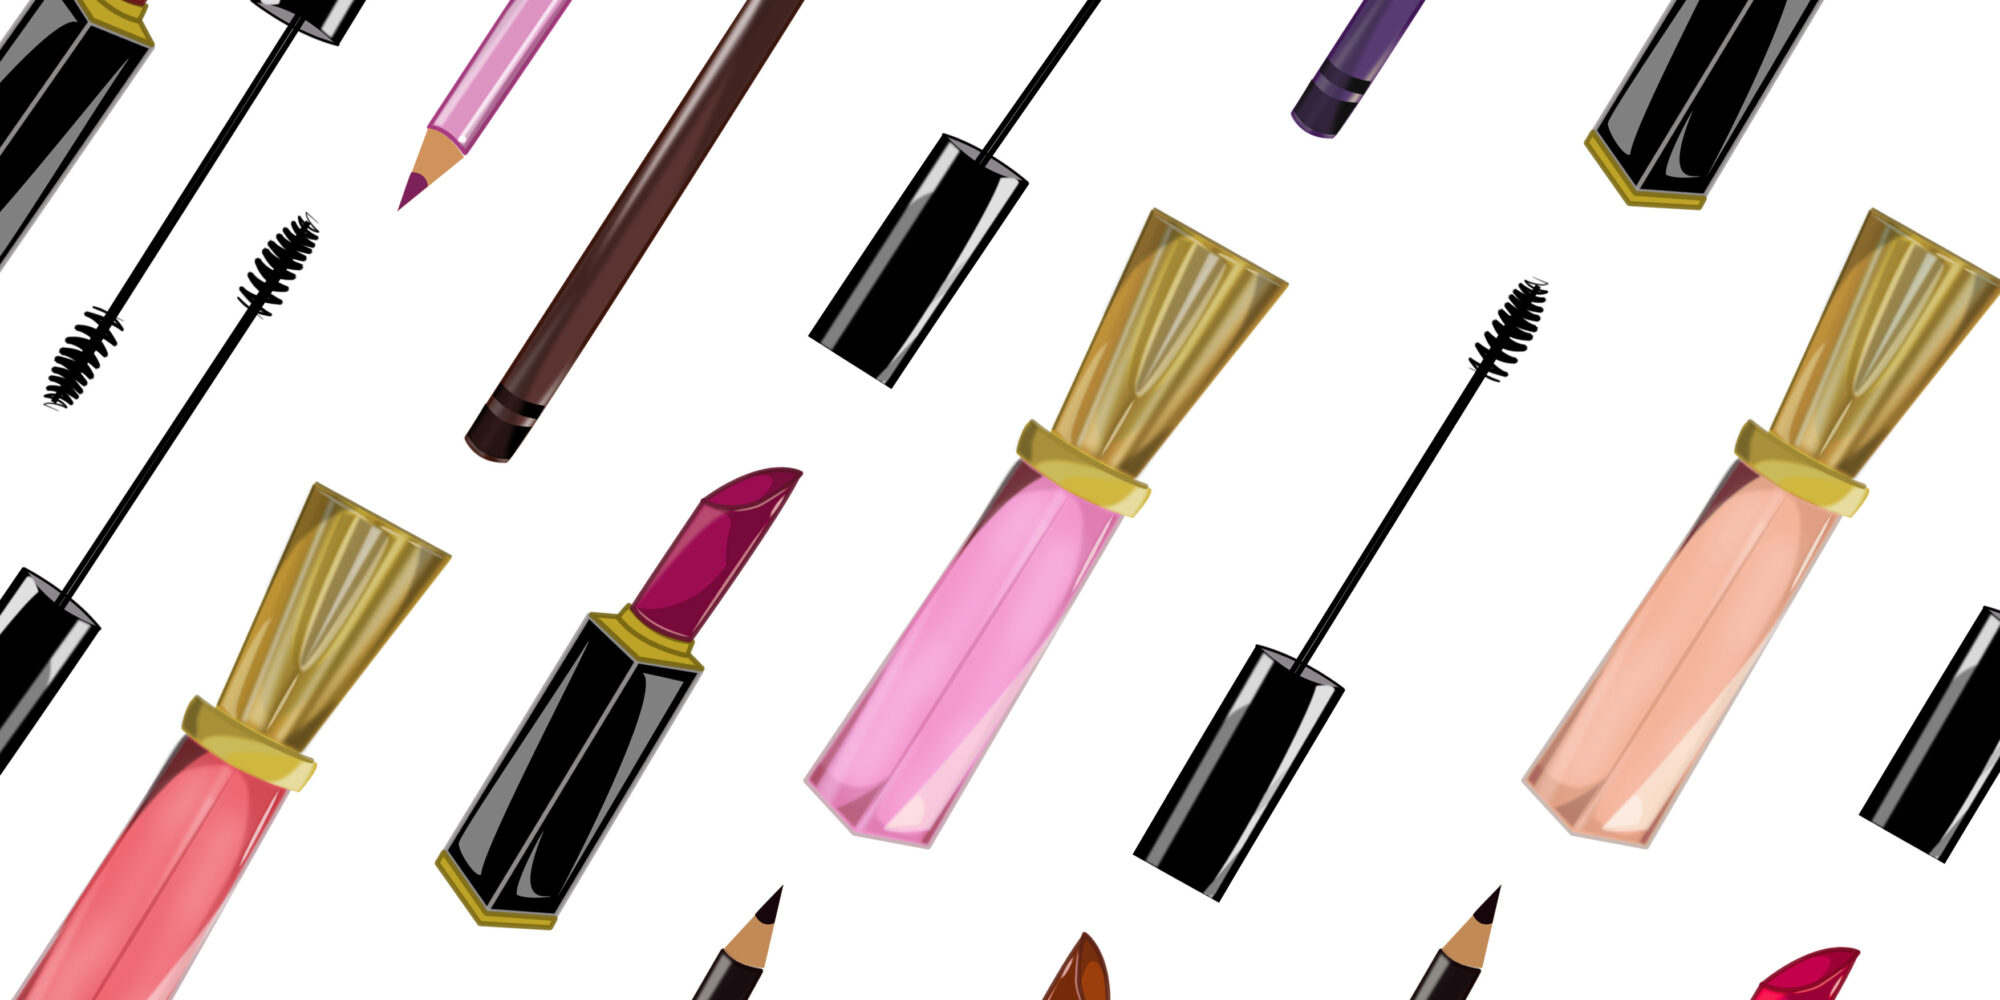 How Much Are Indie Beauty Brands Dealing With Copycats And Counterfeits?